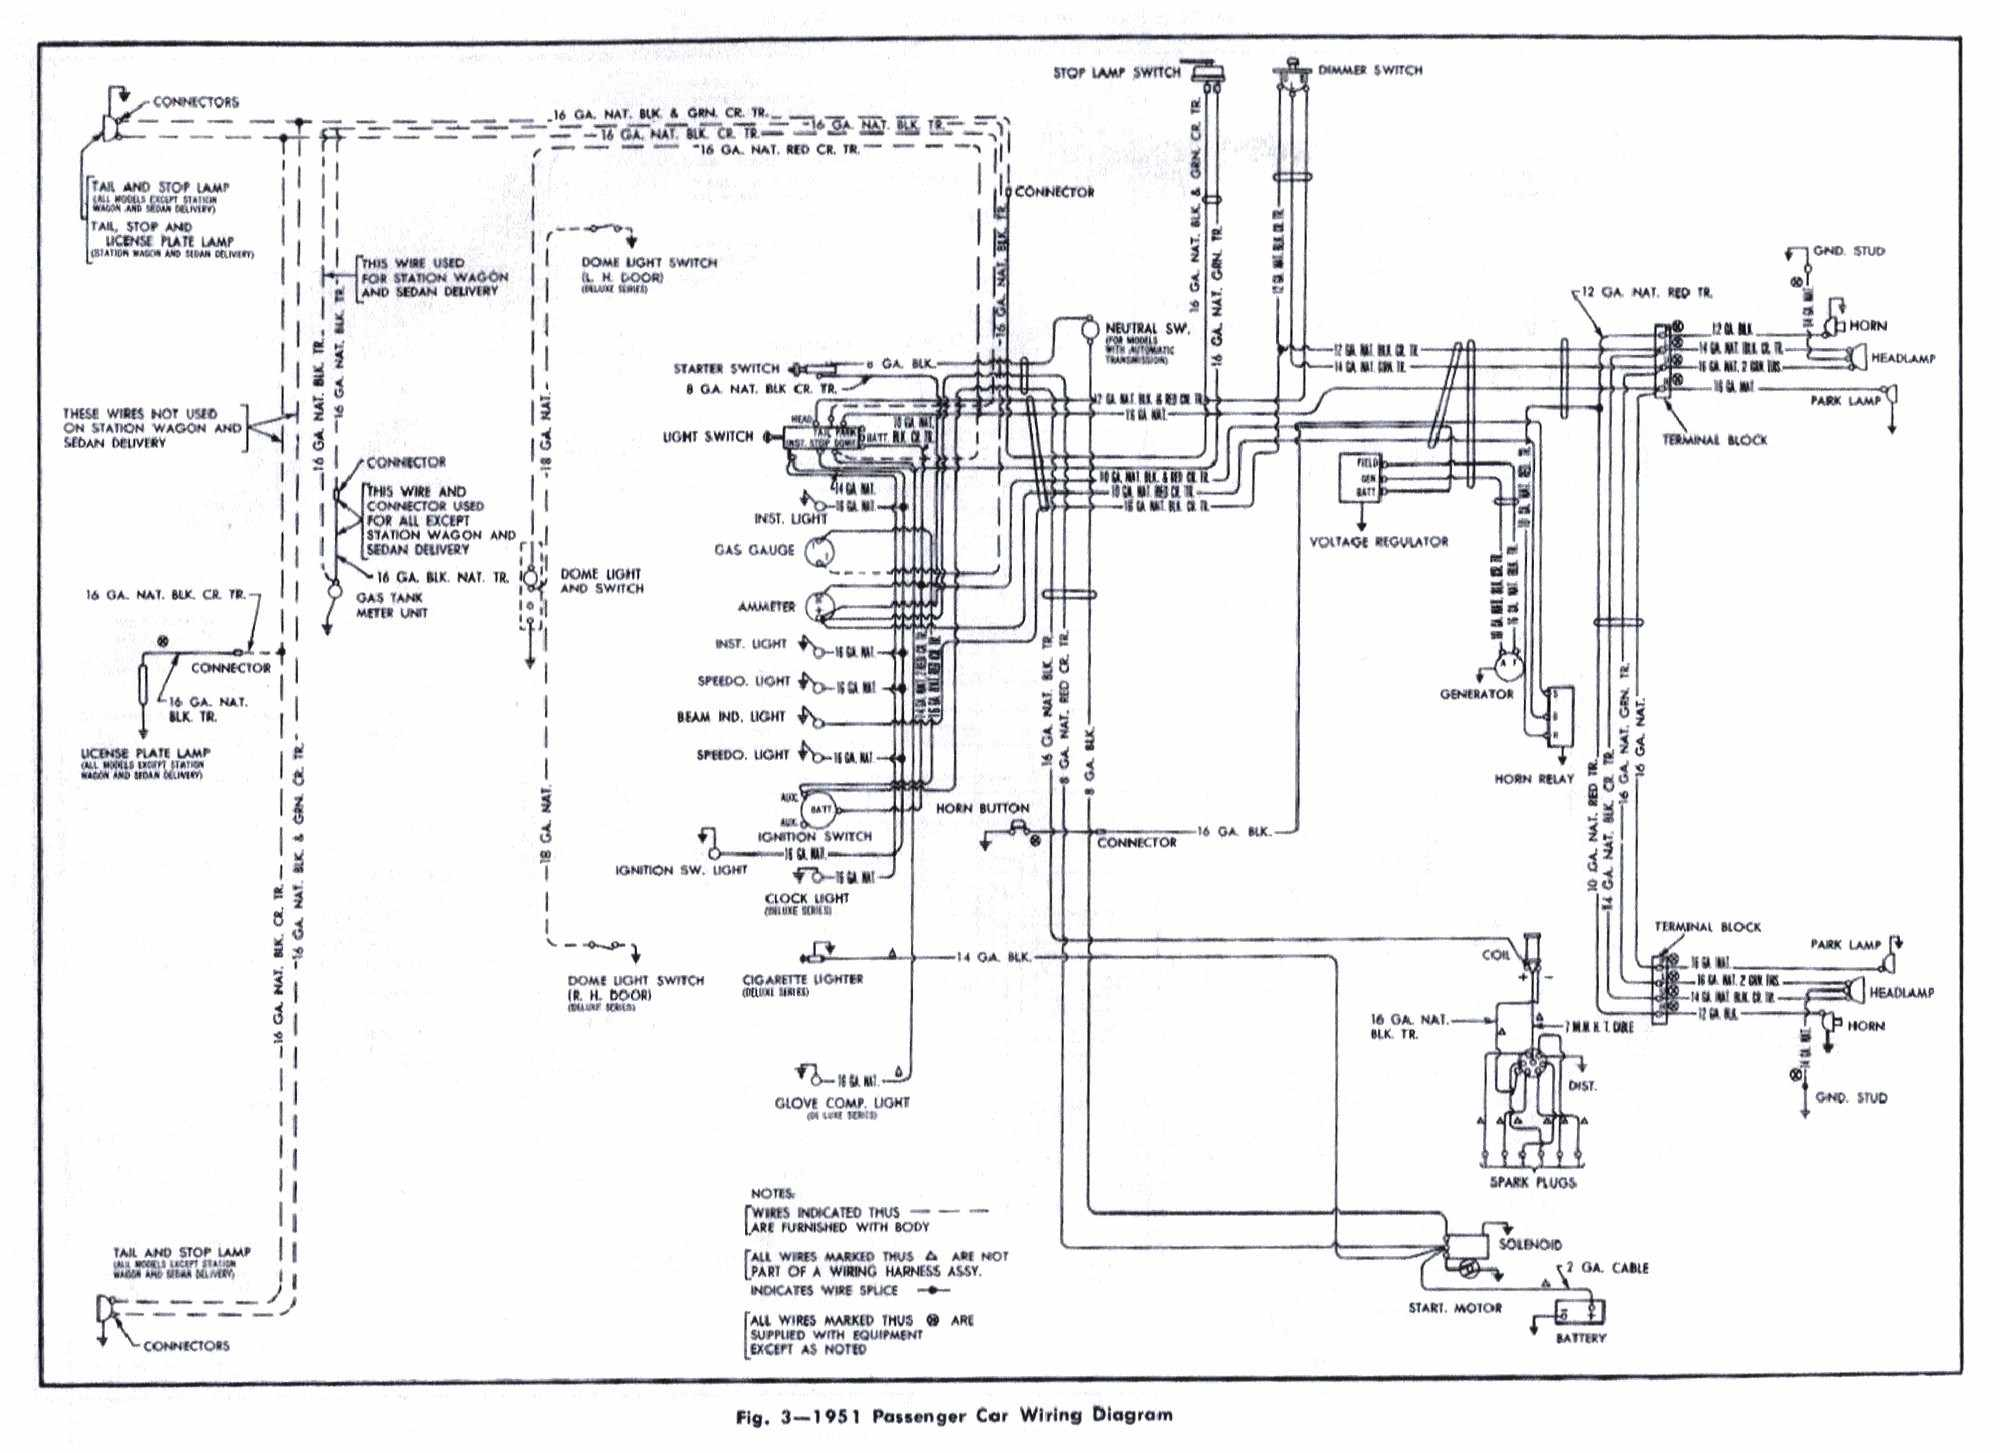 Toyota Hilux Fuse Box Layout Wiring Diagram Libraries Location 2008 Library